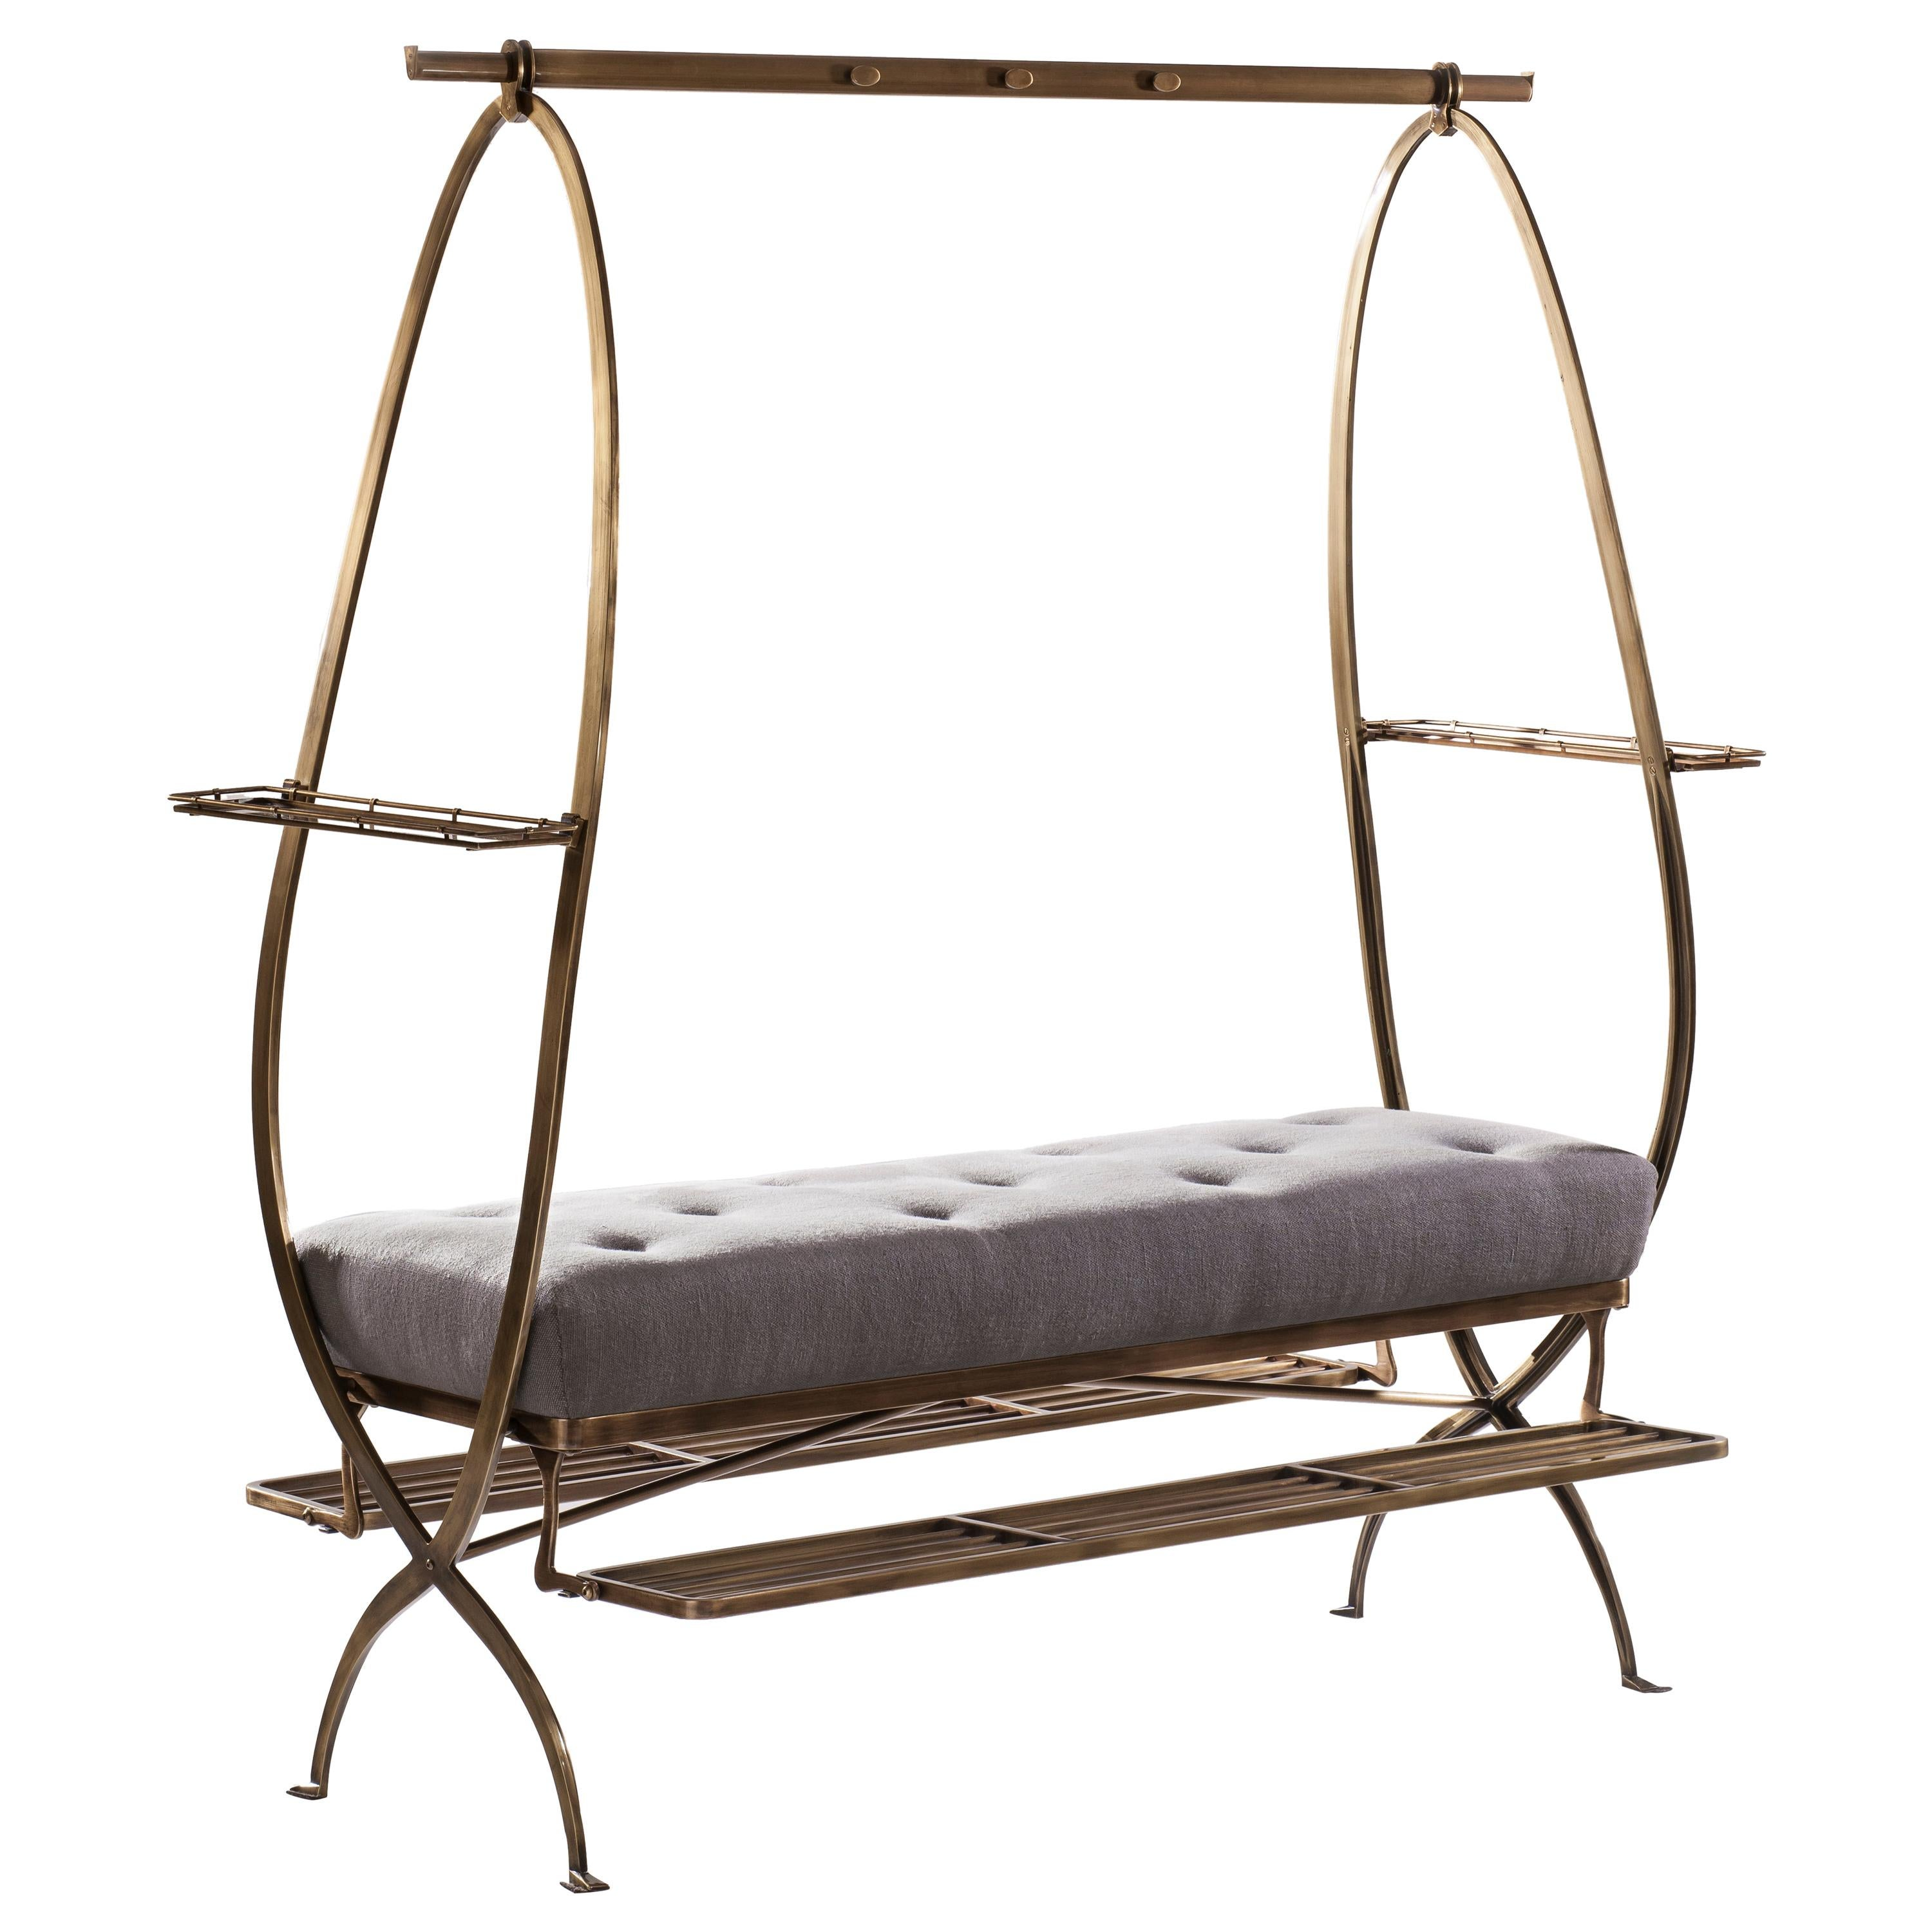 21st Century Bronze-Plated Steel Dressing Bench, the Dumb Valet